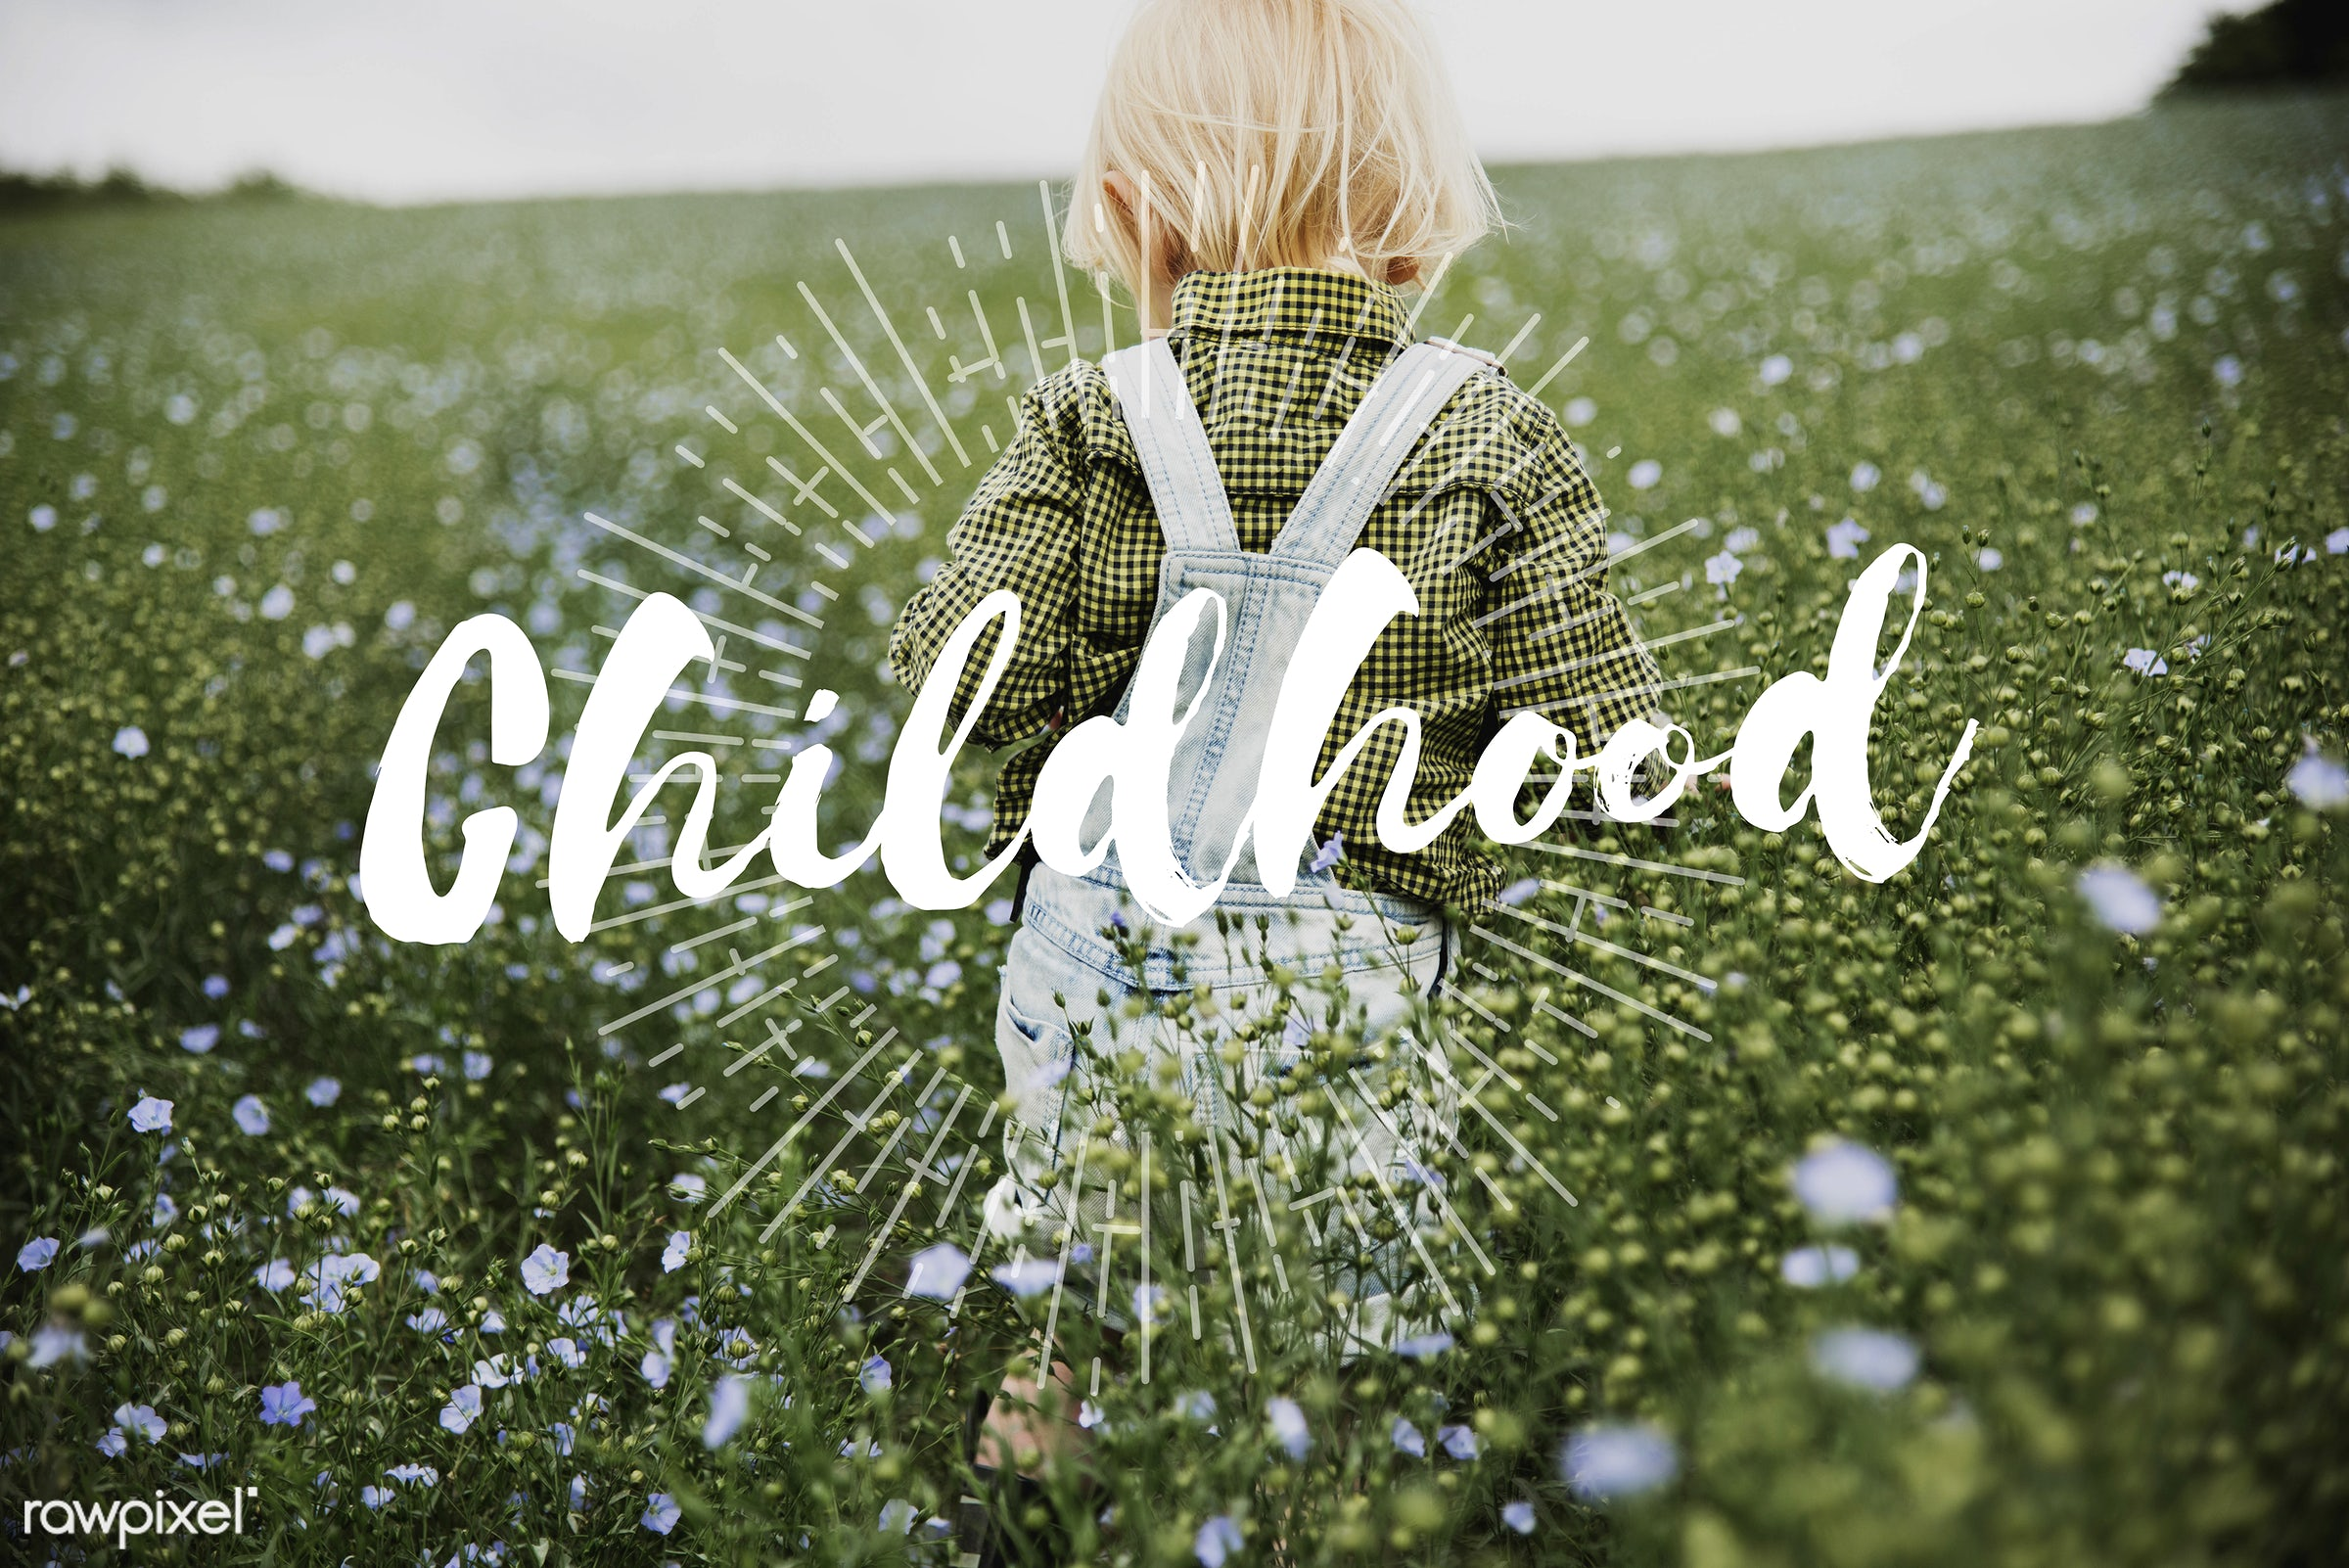 natural, adolescence, blonde, boy, caucasian, child, childhood, children, dungarees, early life, early years, flower garden...